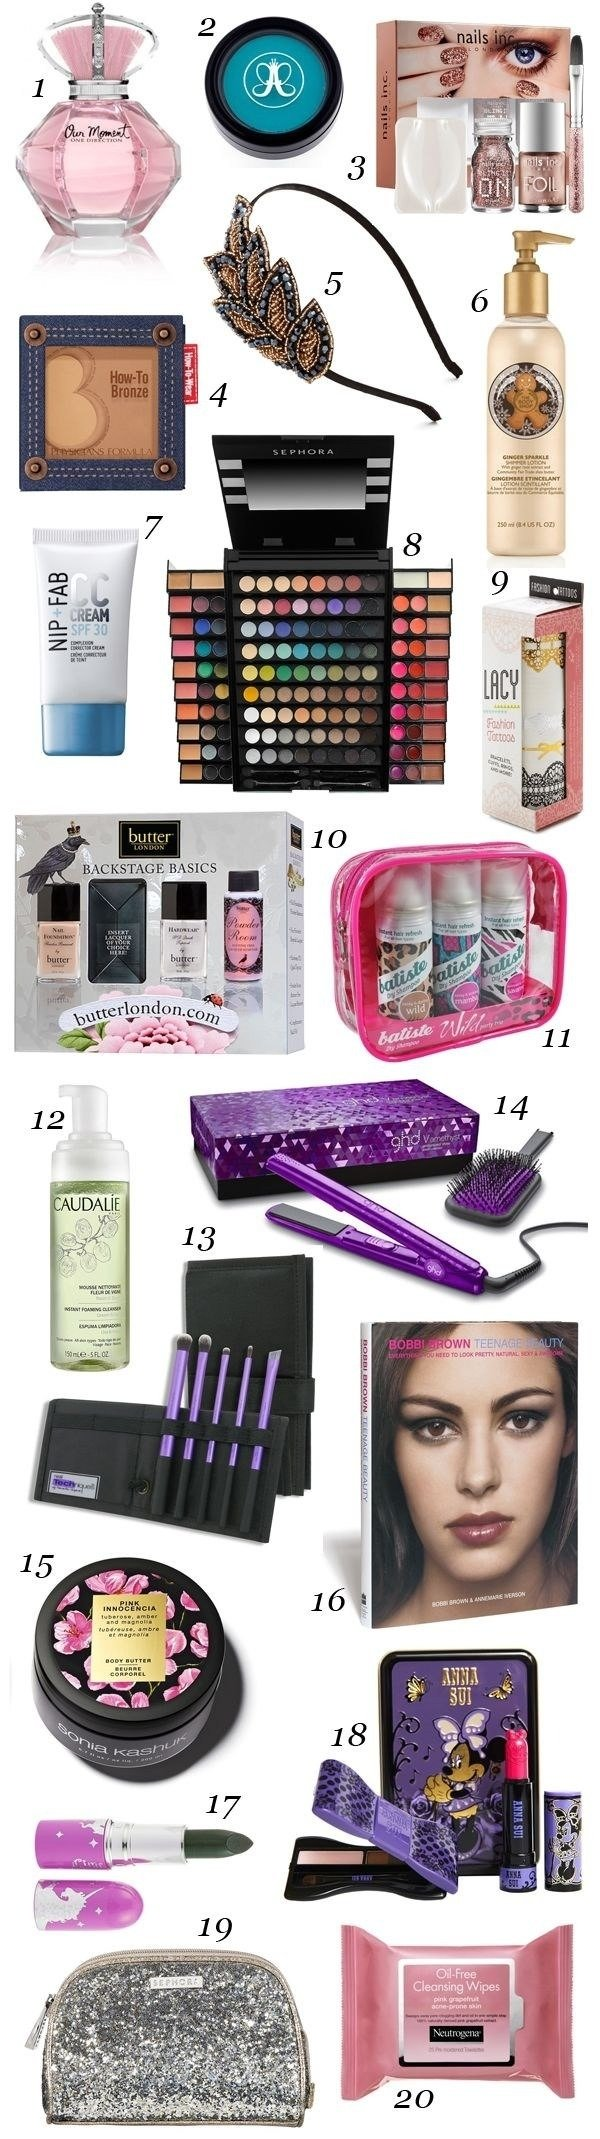 10 Great Gift Ideas For A 14 Year Old Girl what to get a 16 year old girl for christmas eknom jo 2 2020